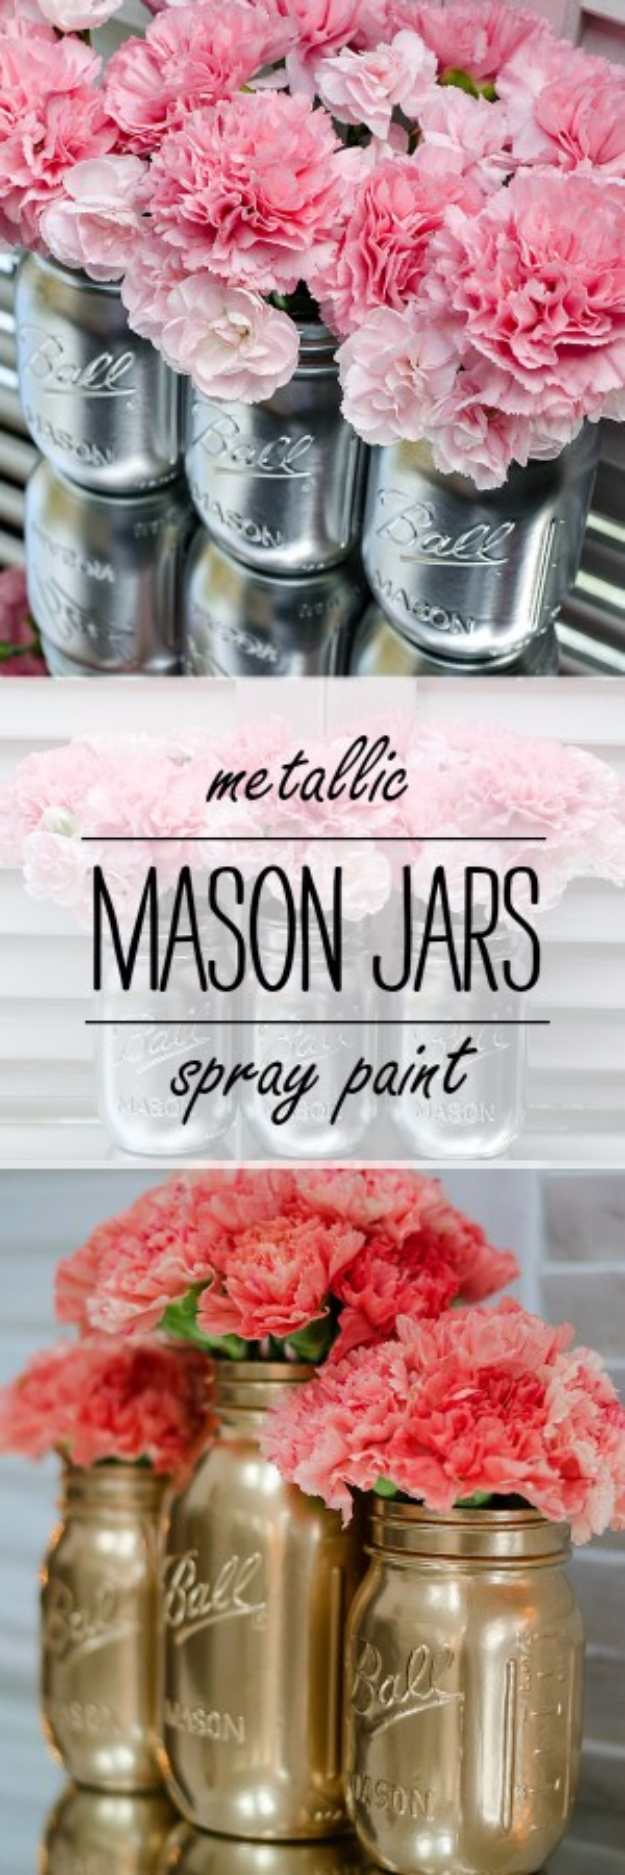 36 brilliant mason jar vases you should make today page 4 of 4 diy mason jar vases metallic spray paint mason jar vases best vase projects and reviewsmspy